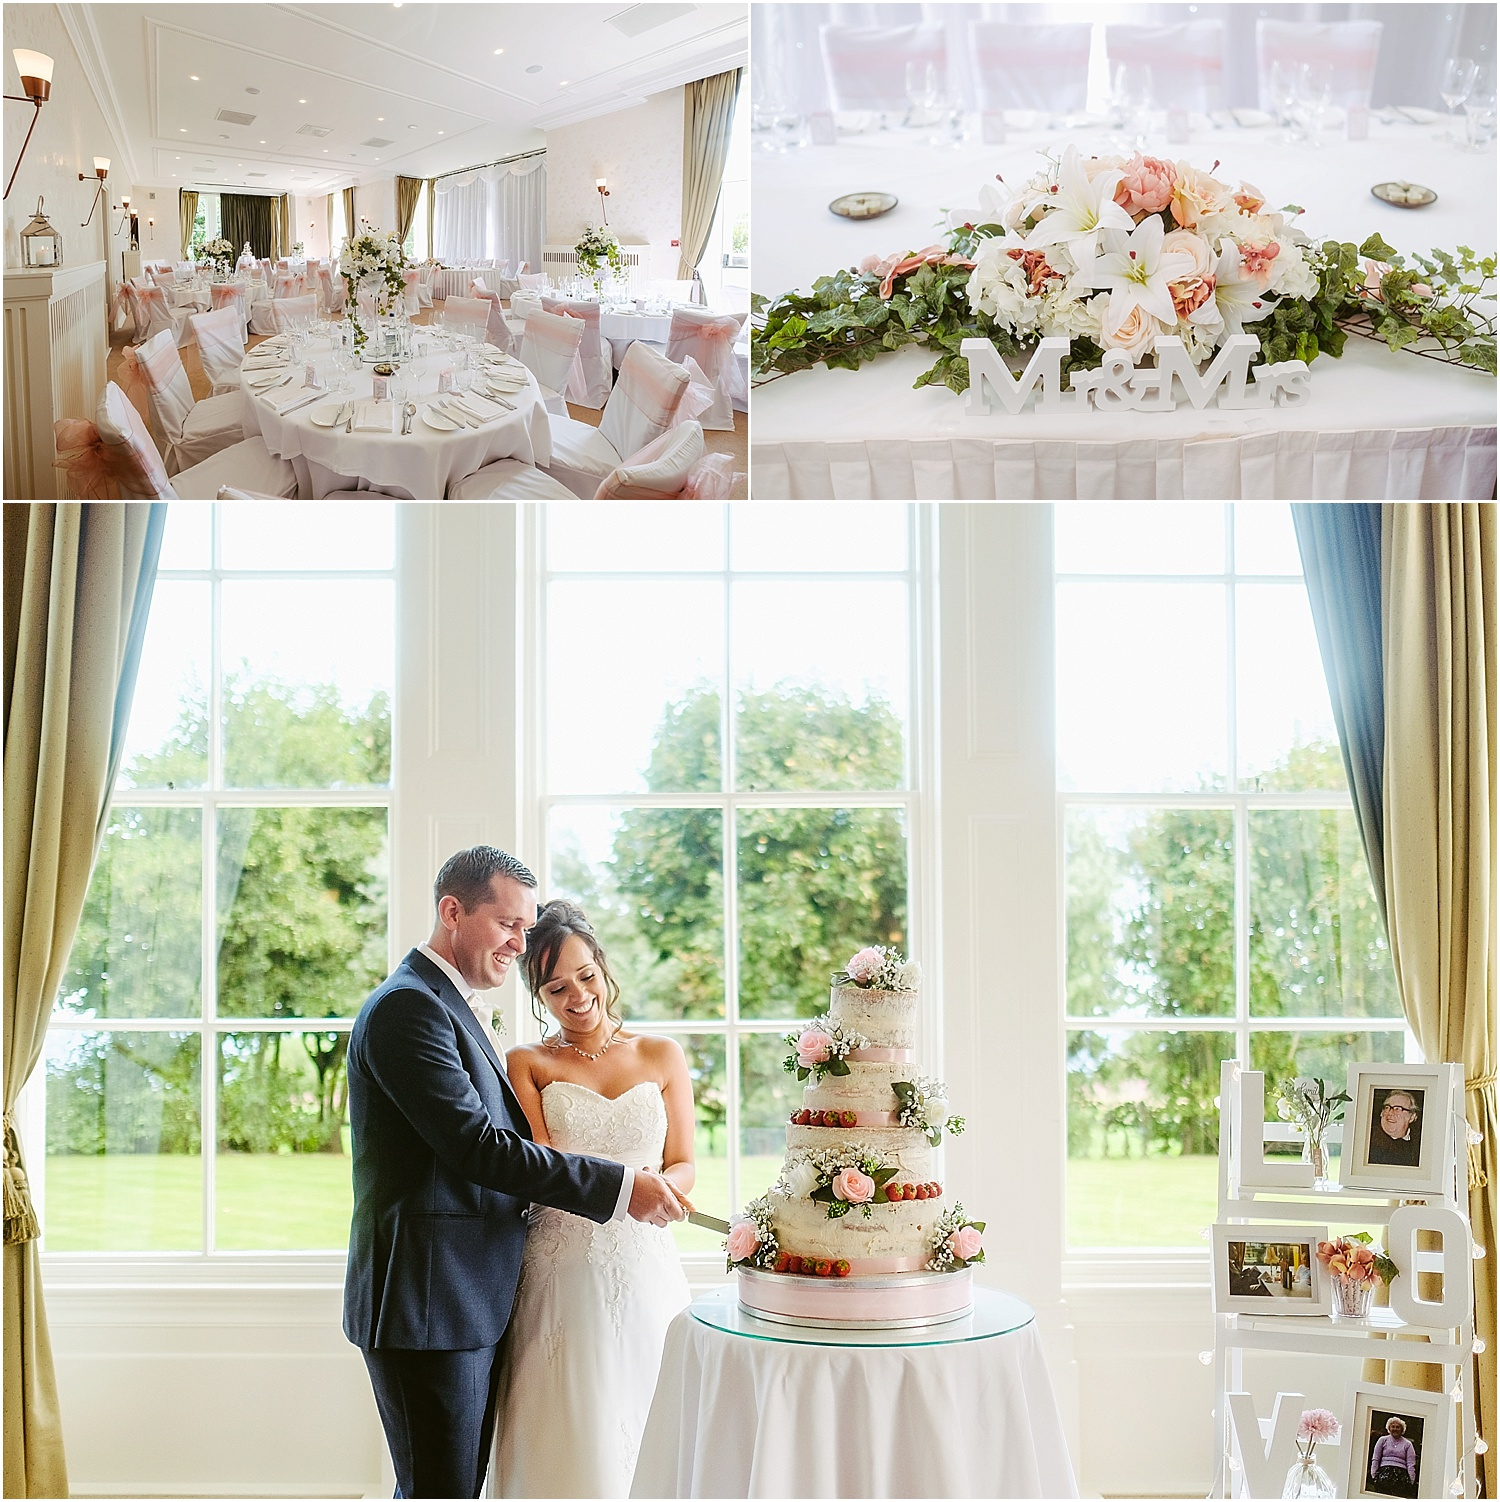 Wedding at Seaham Hall - wedding photography by www.2tonephotography.co.uk 048.jpg